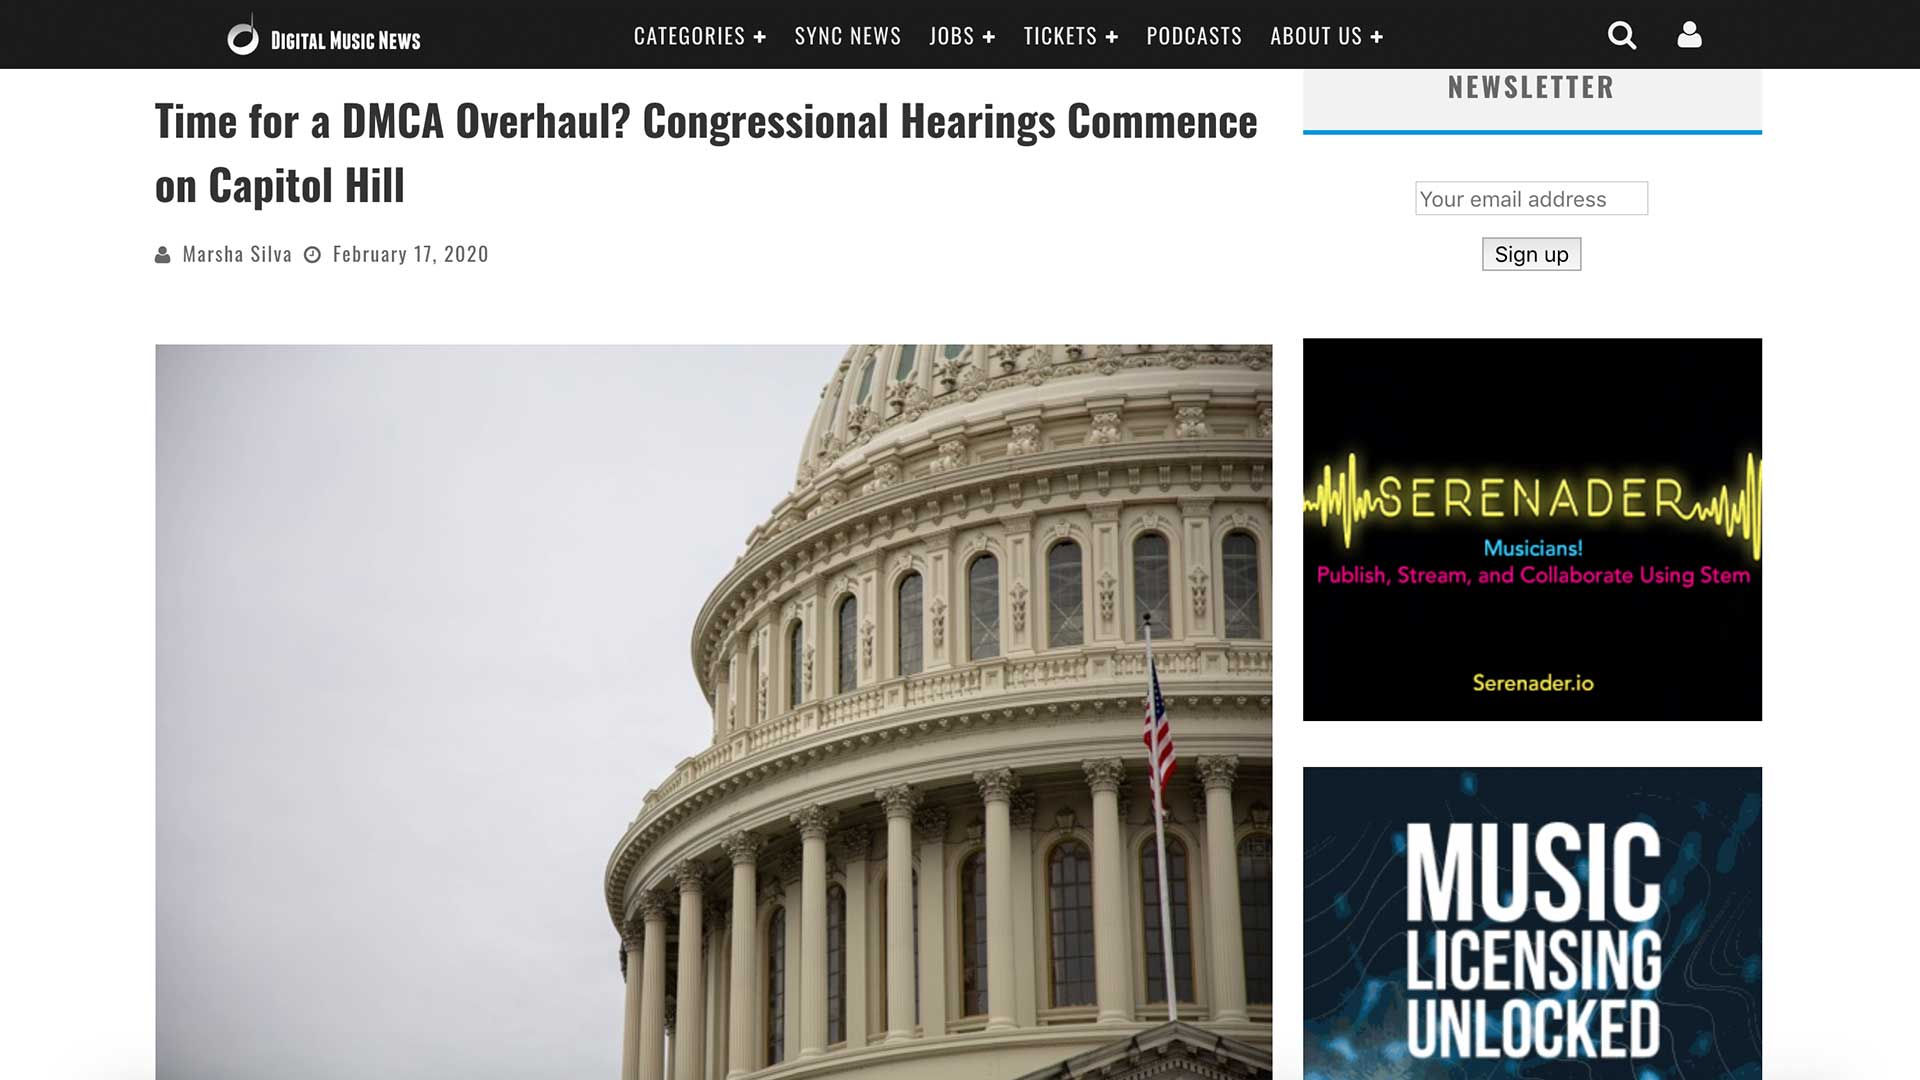 Fairness Rocks News Time for a DMCA Overhaul? Congressional Hearings Commence on Capitol Hill